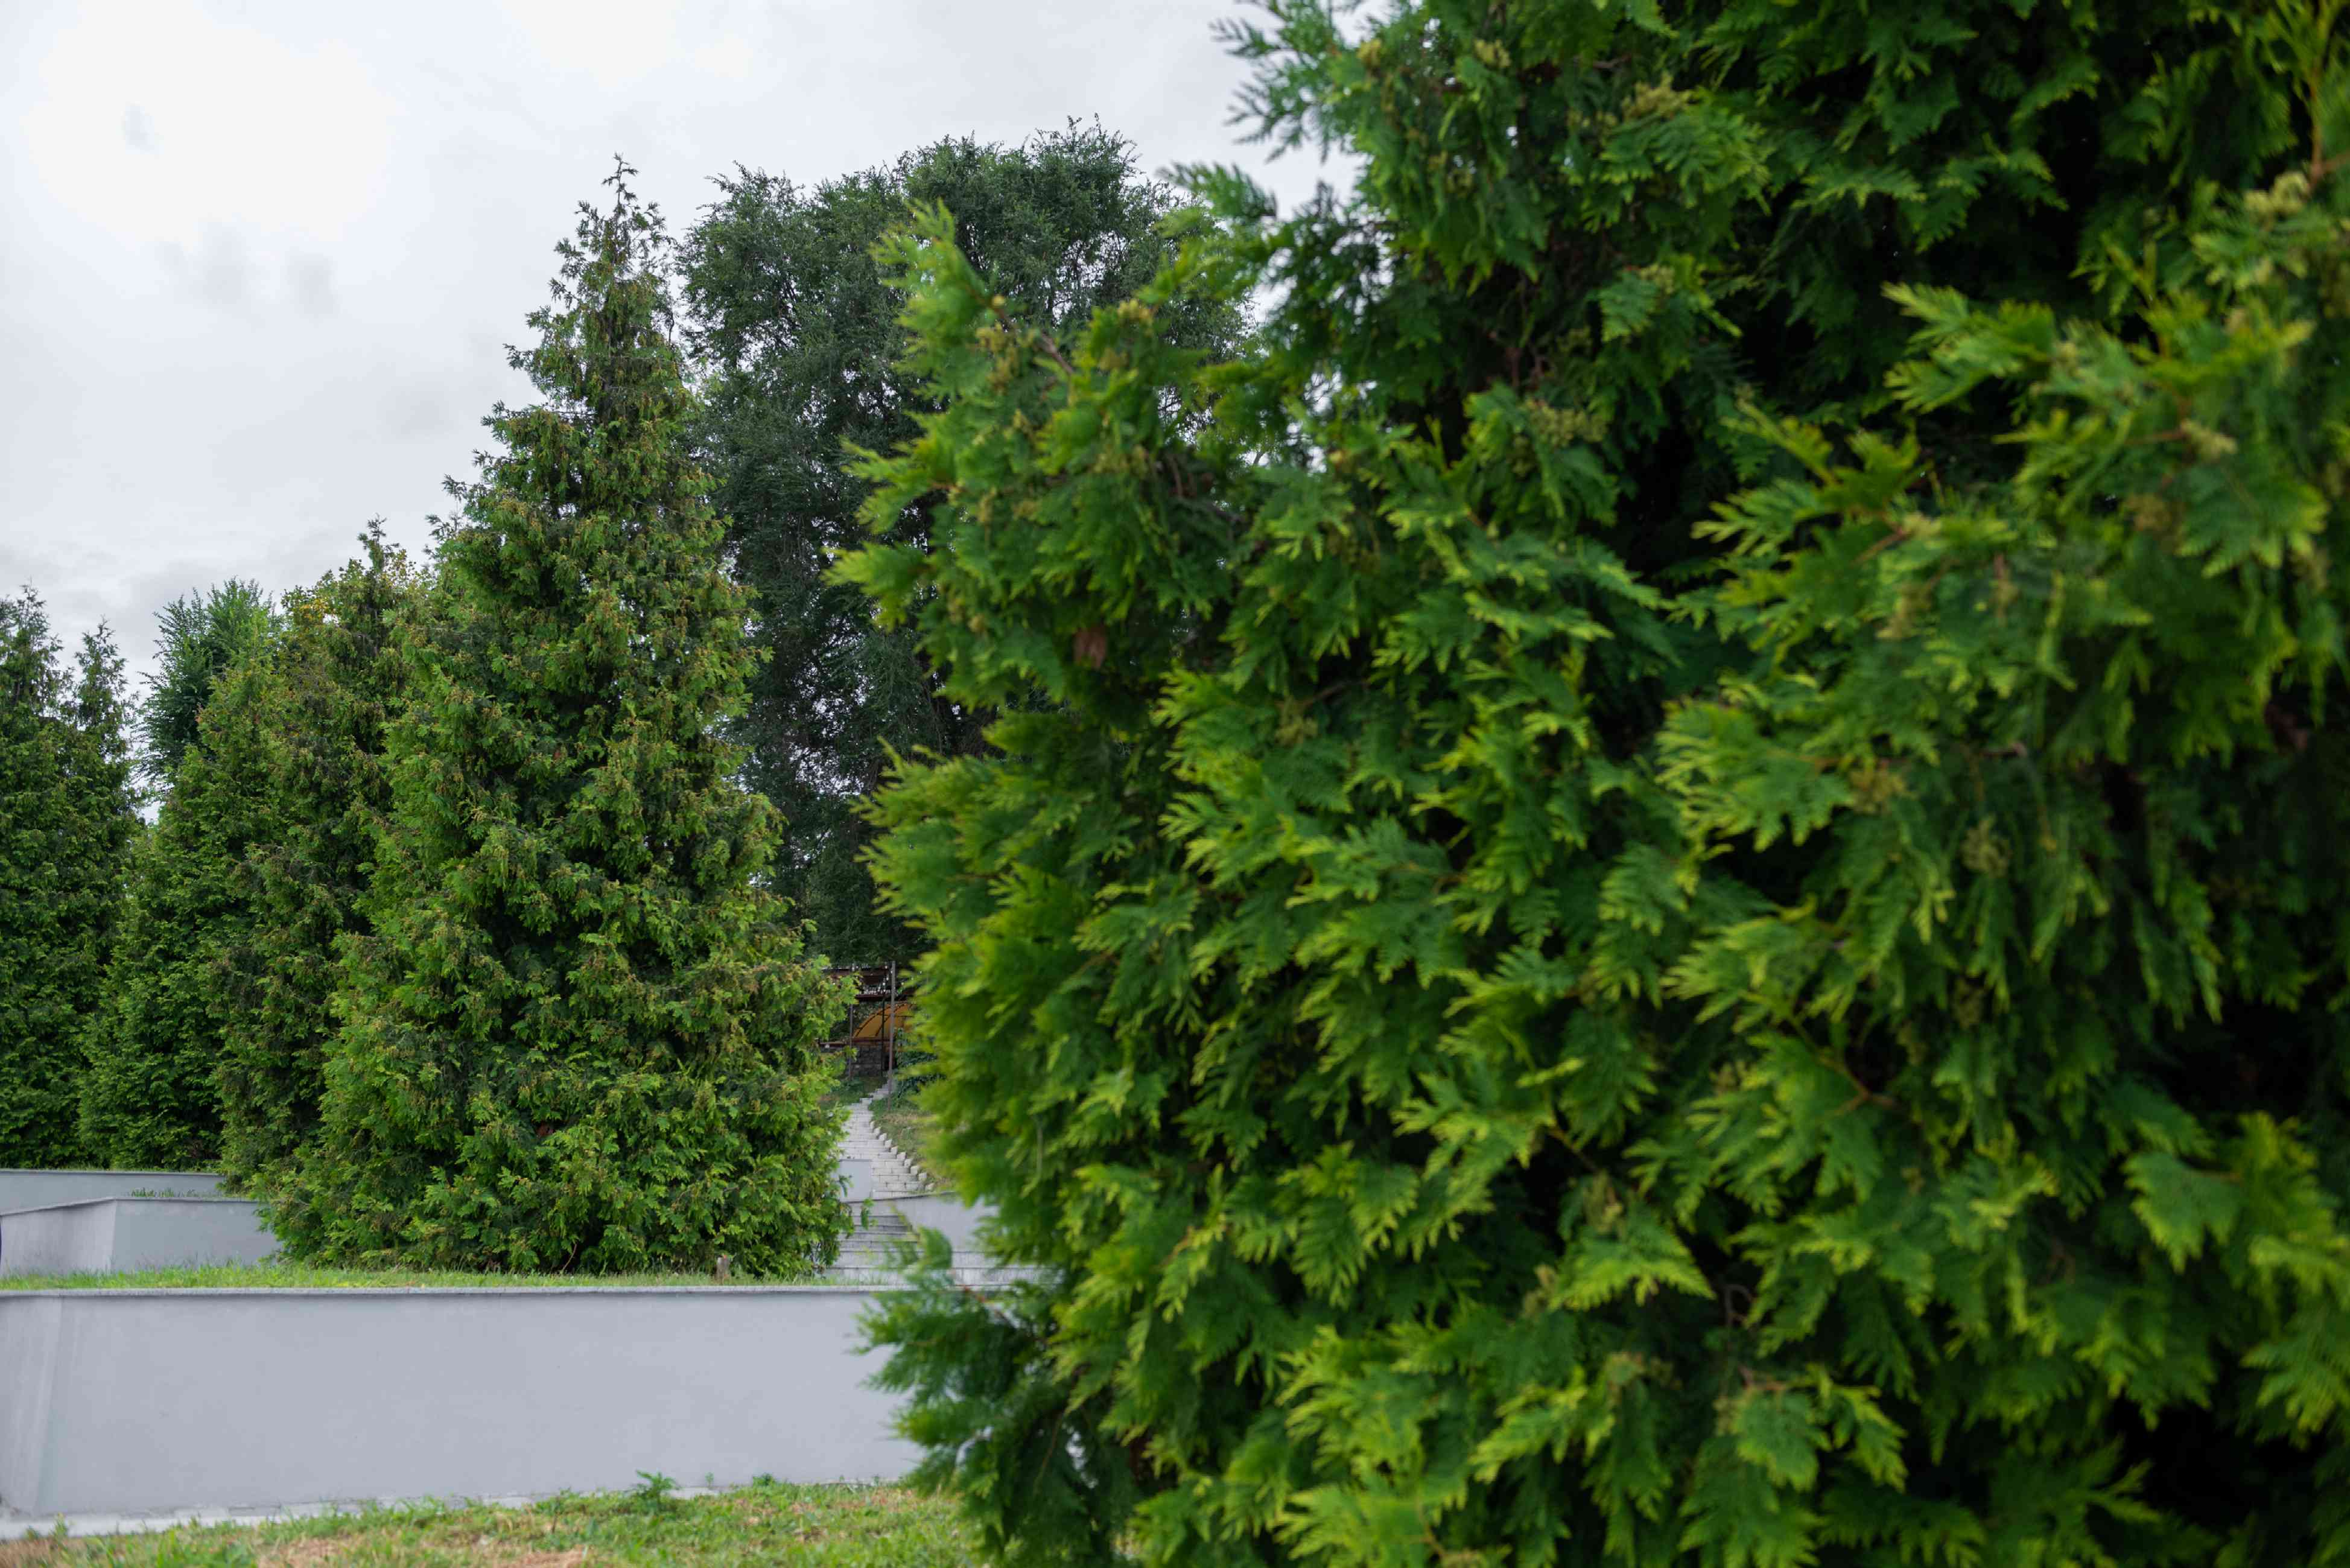 Giant arborvitae trees trimmed in triangular shapes on raised landscapes